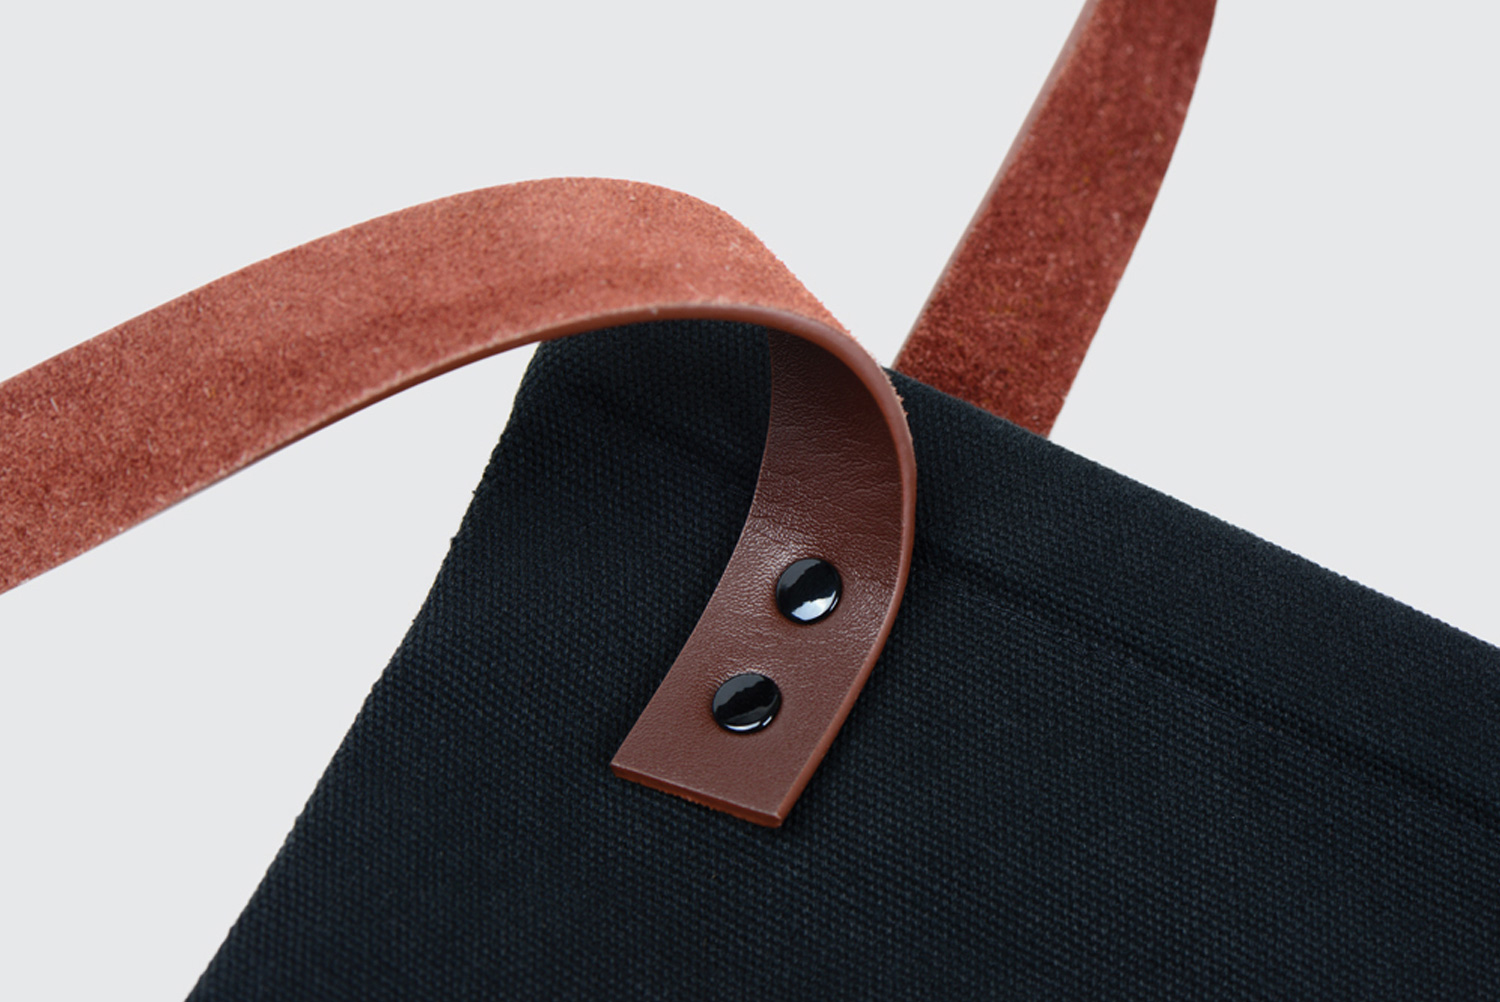 Progress Packaging Rathbone Square Property Leather Handles Canvas